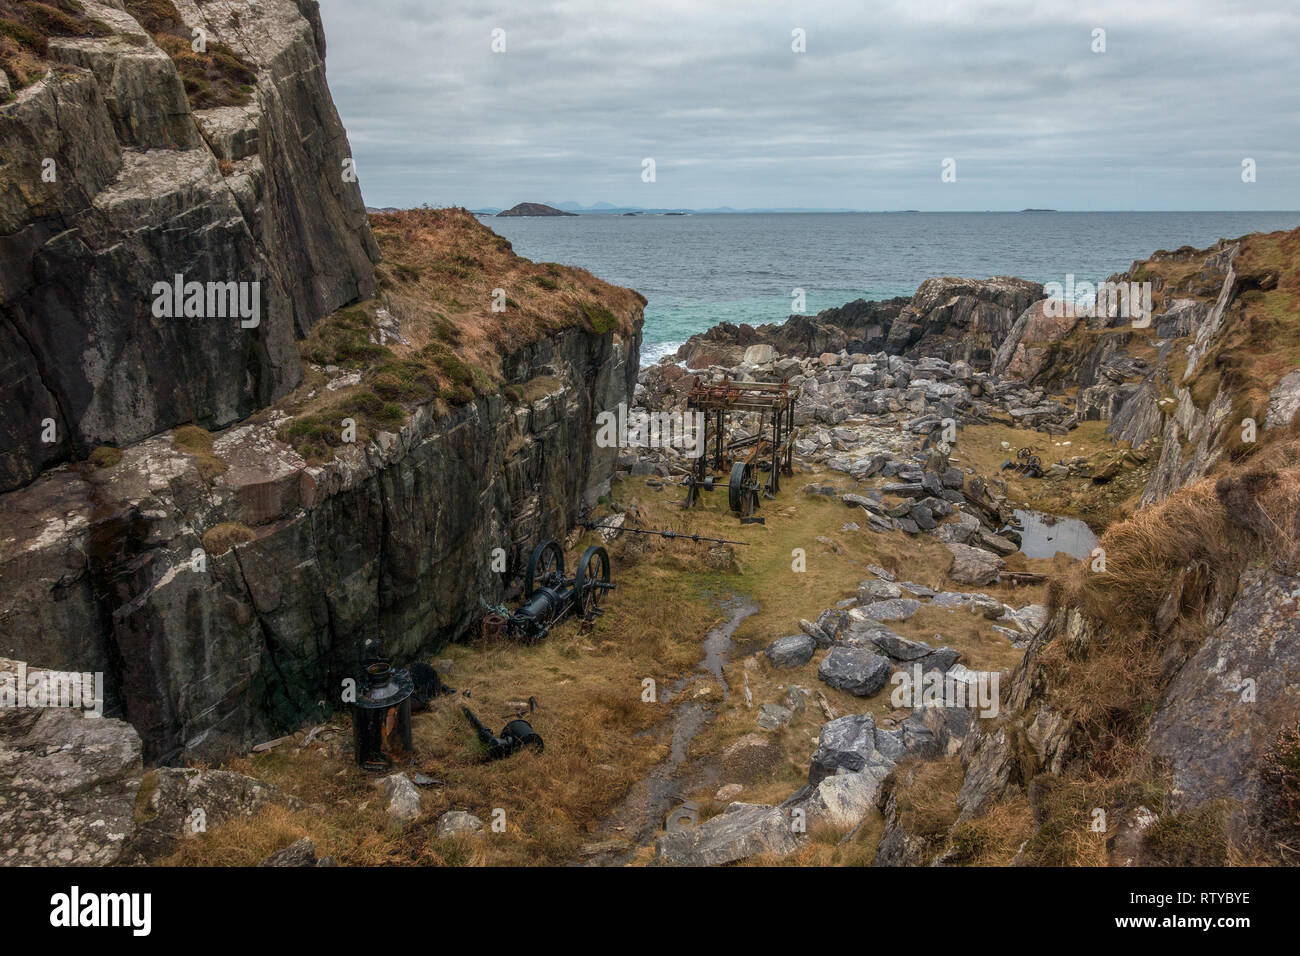 Derelict Marble Quarry on the Isle of Iona, Scotland More info here http://www.welcometoiona.com/places-of-interest/marble-quarry/ - Stock Image